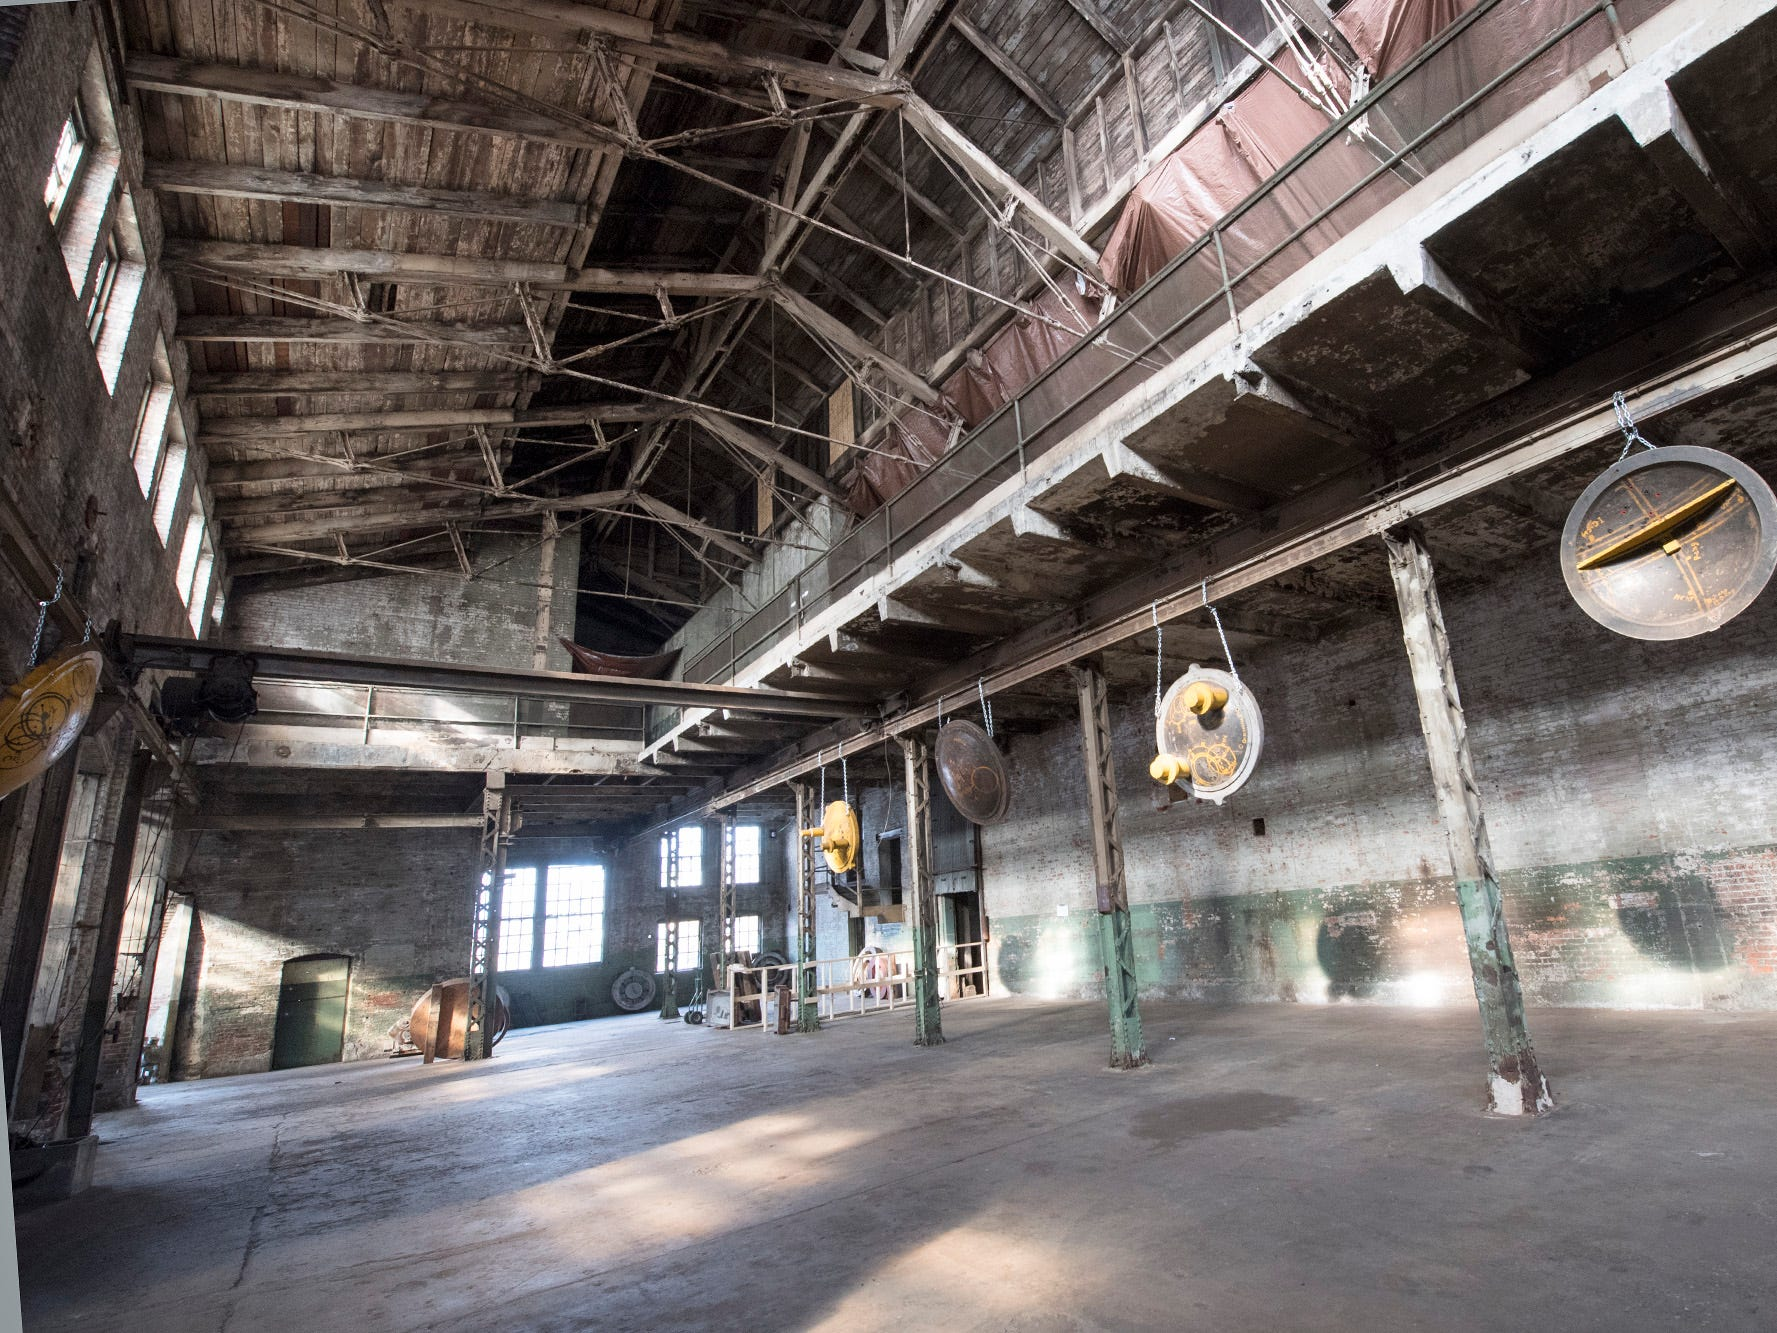 This is inside the foundry building at 145 N. Hartley St. in York. The 54,000-square-foot building has been gutted and refurbished, however, no initial plans have been made for the site.